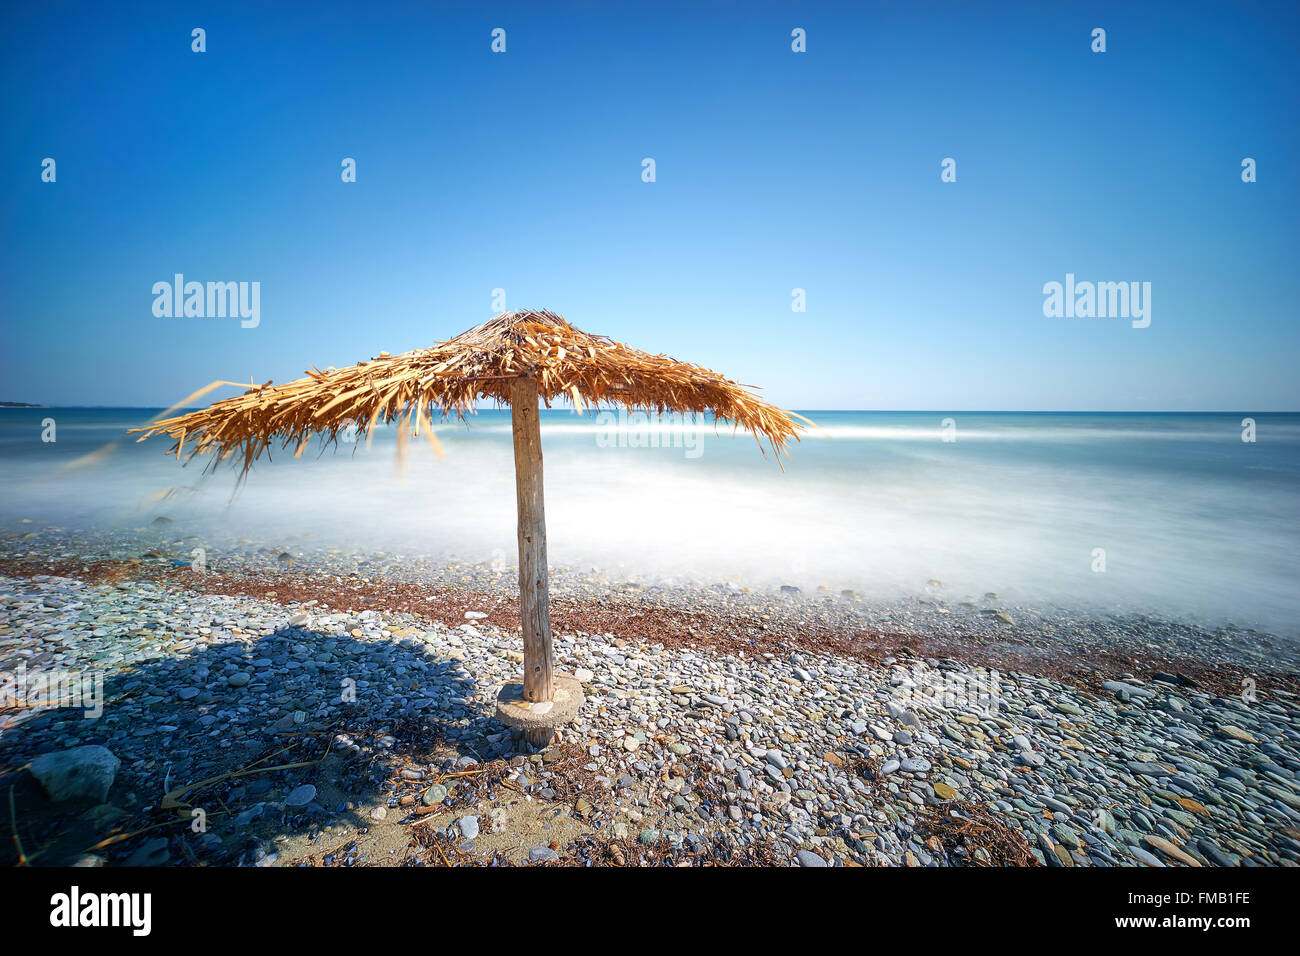 Seaside landscape with straw umbrella on the beach. - Stock Image